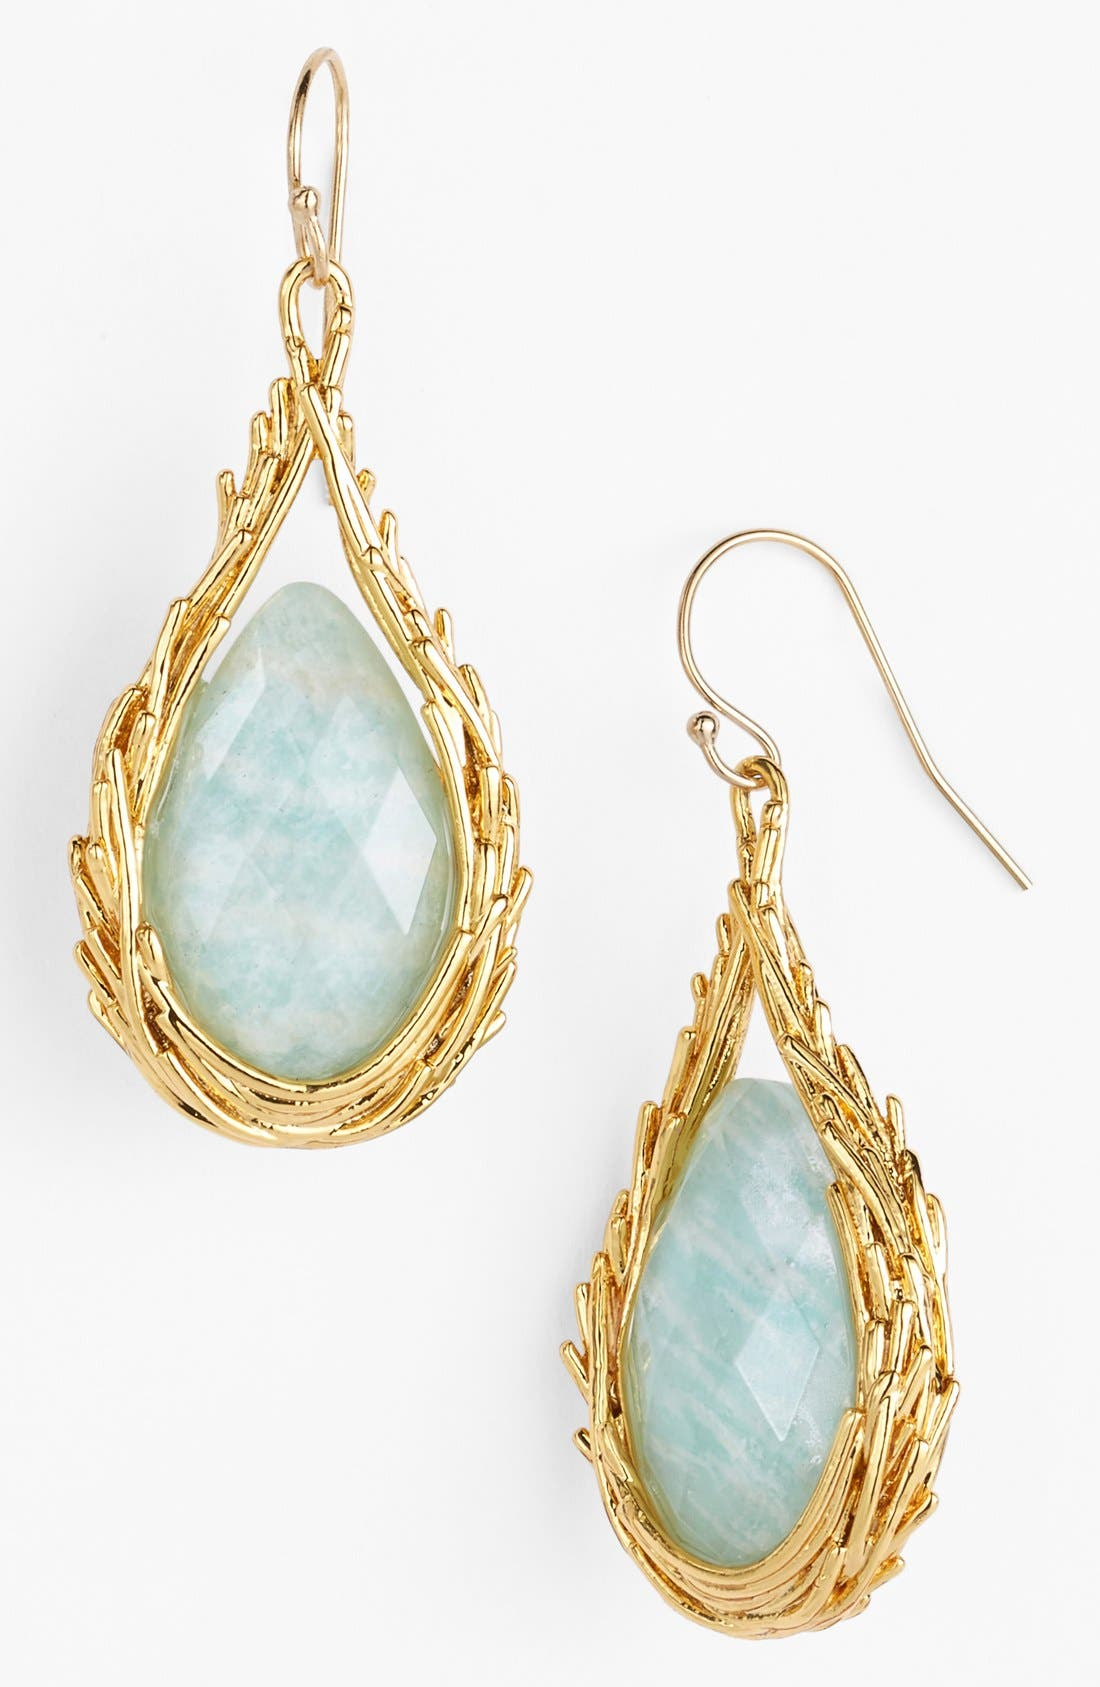 Alternate Image 1 Selected - Alexis Bittar 'Elements - Maldivian' Teardrop Earrings